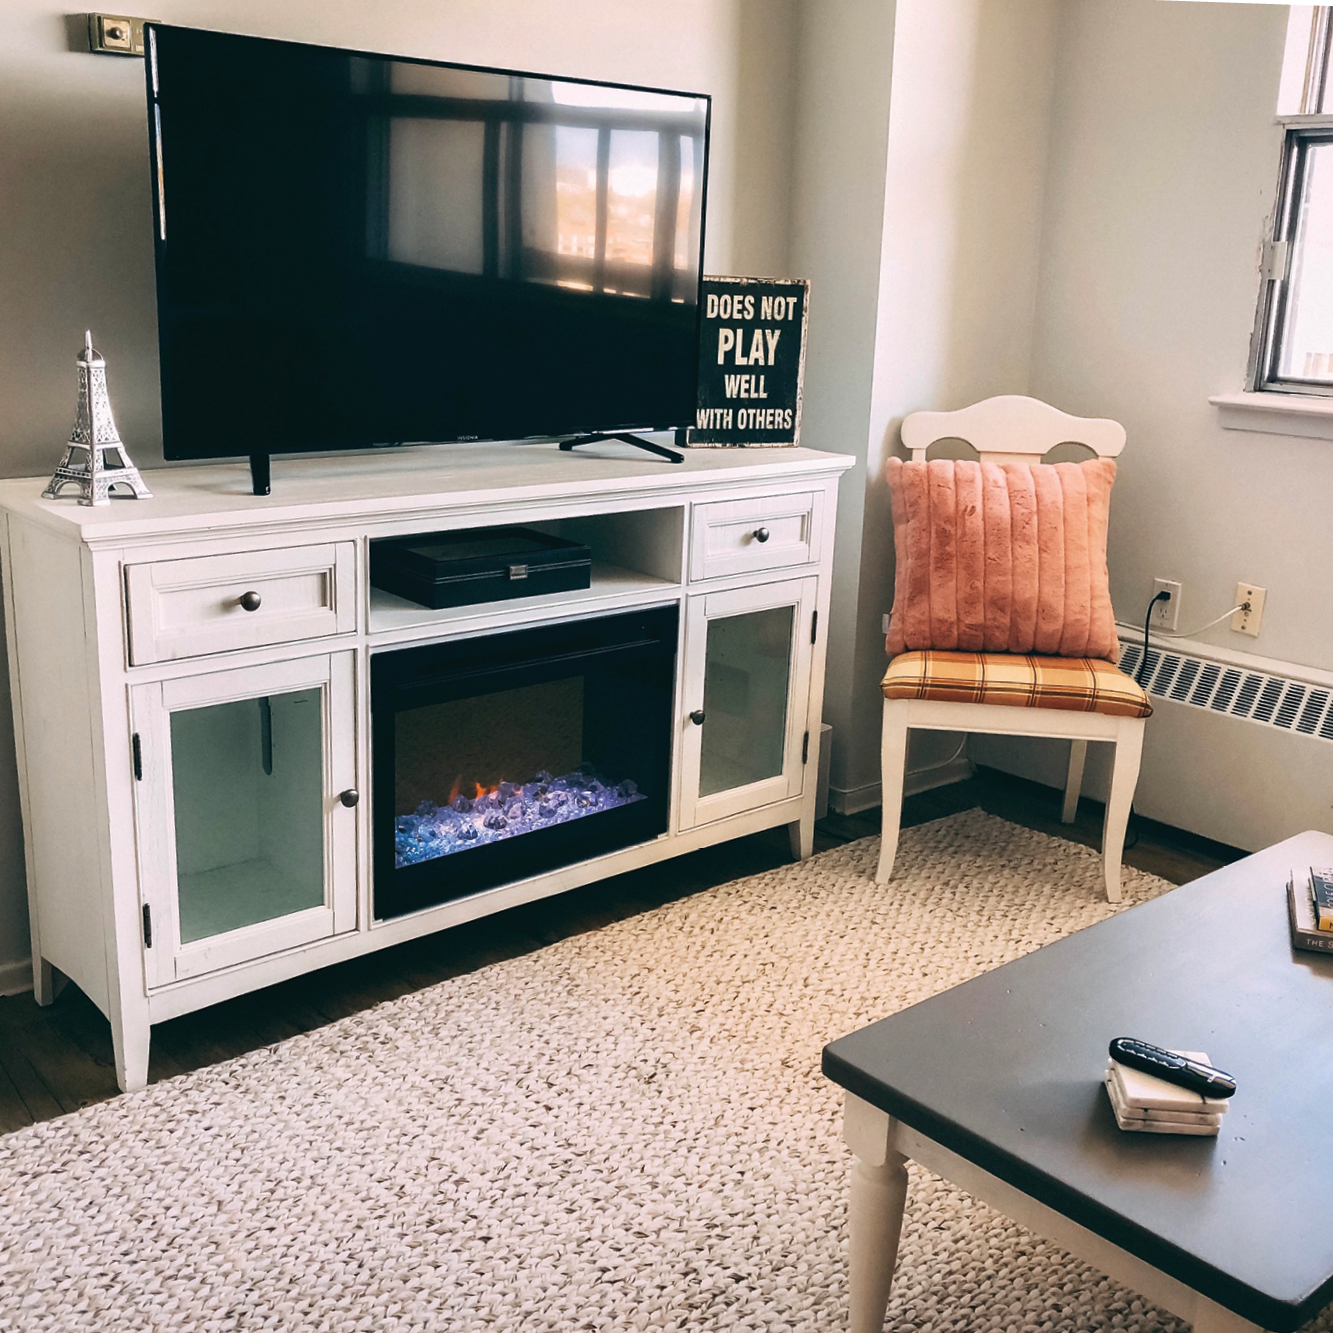 An Easy Diy For A Boring Apartment: Nicole Sweetman-Rice